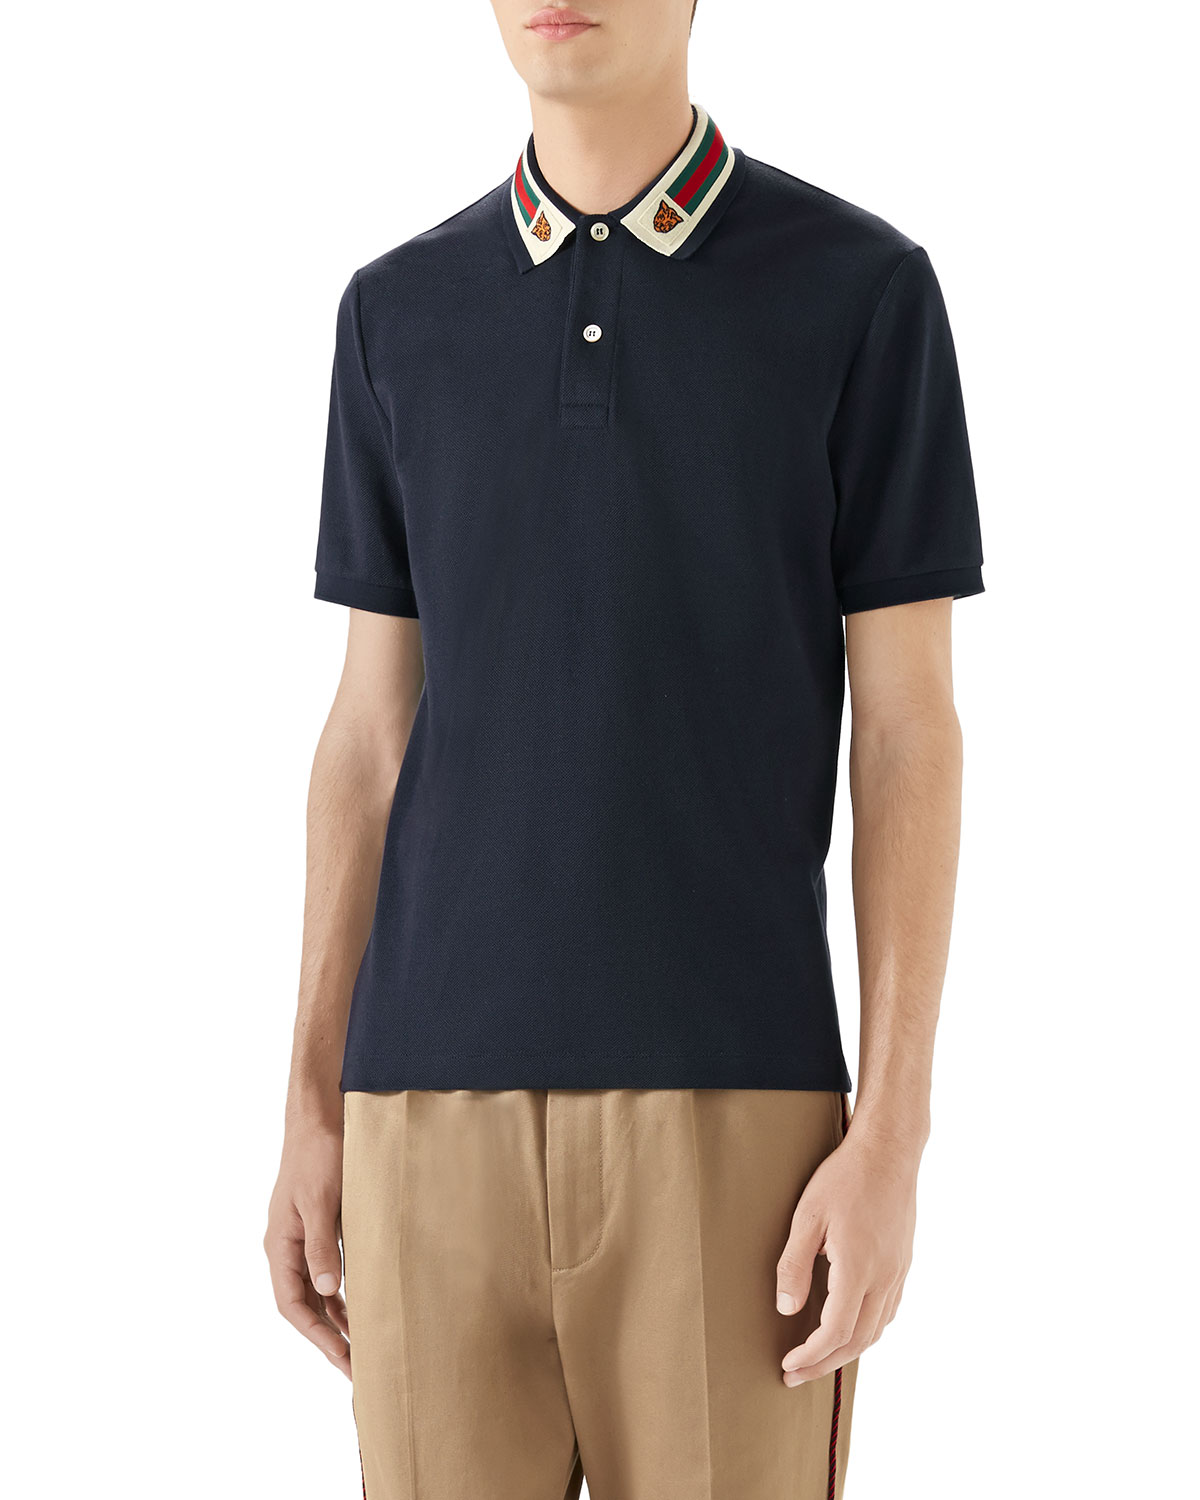 Gucci Men's Pique Polo Shirt w/ Web Collar